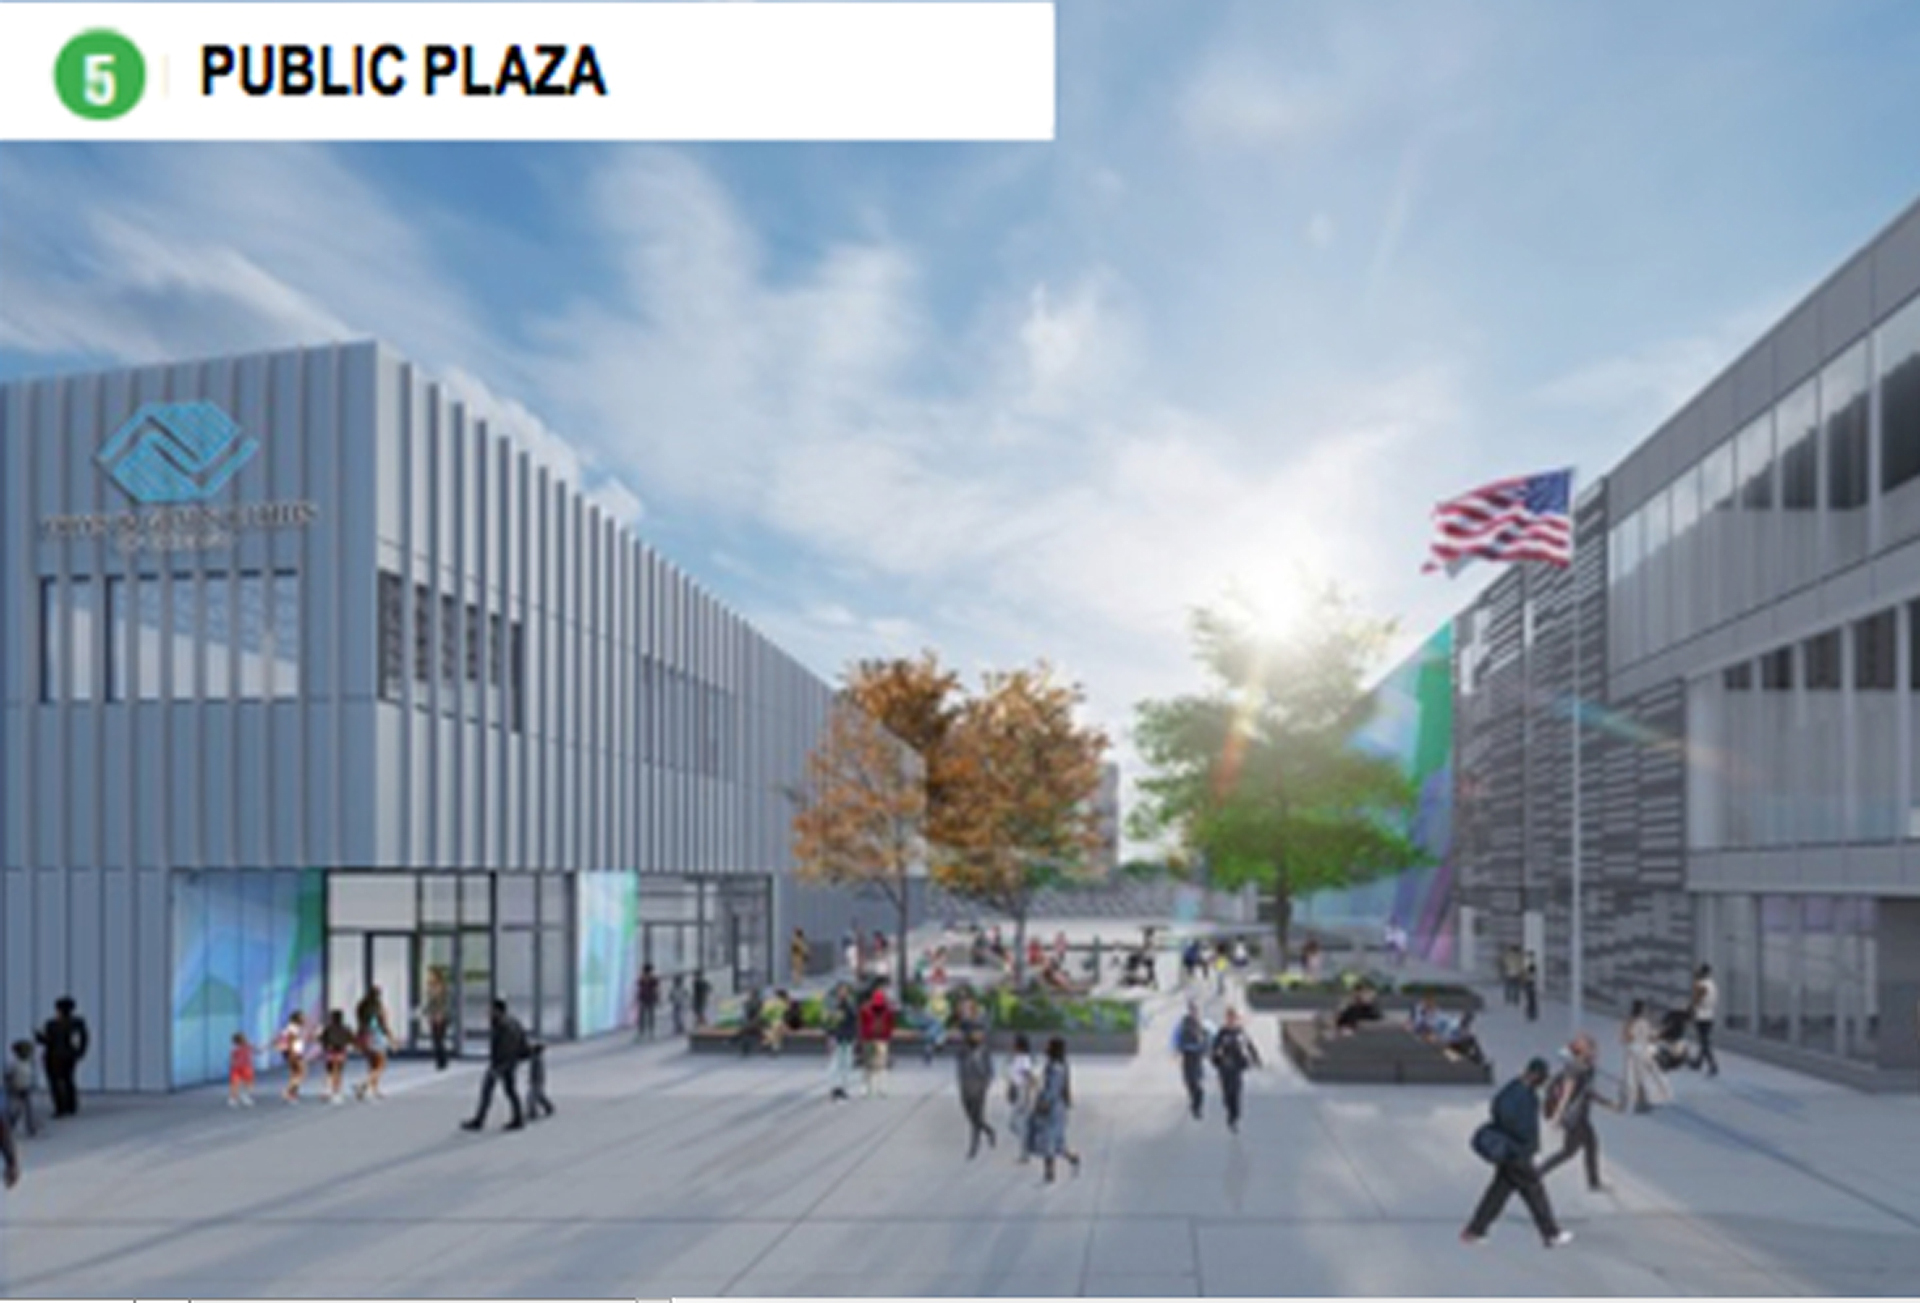 An architect's rendering shows a Boys & Girls Club (left) next to the planned training facility for Chicago police officers and firefighters (right) in West Garfield Park.